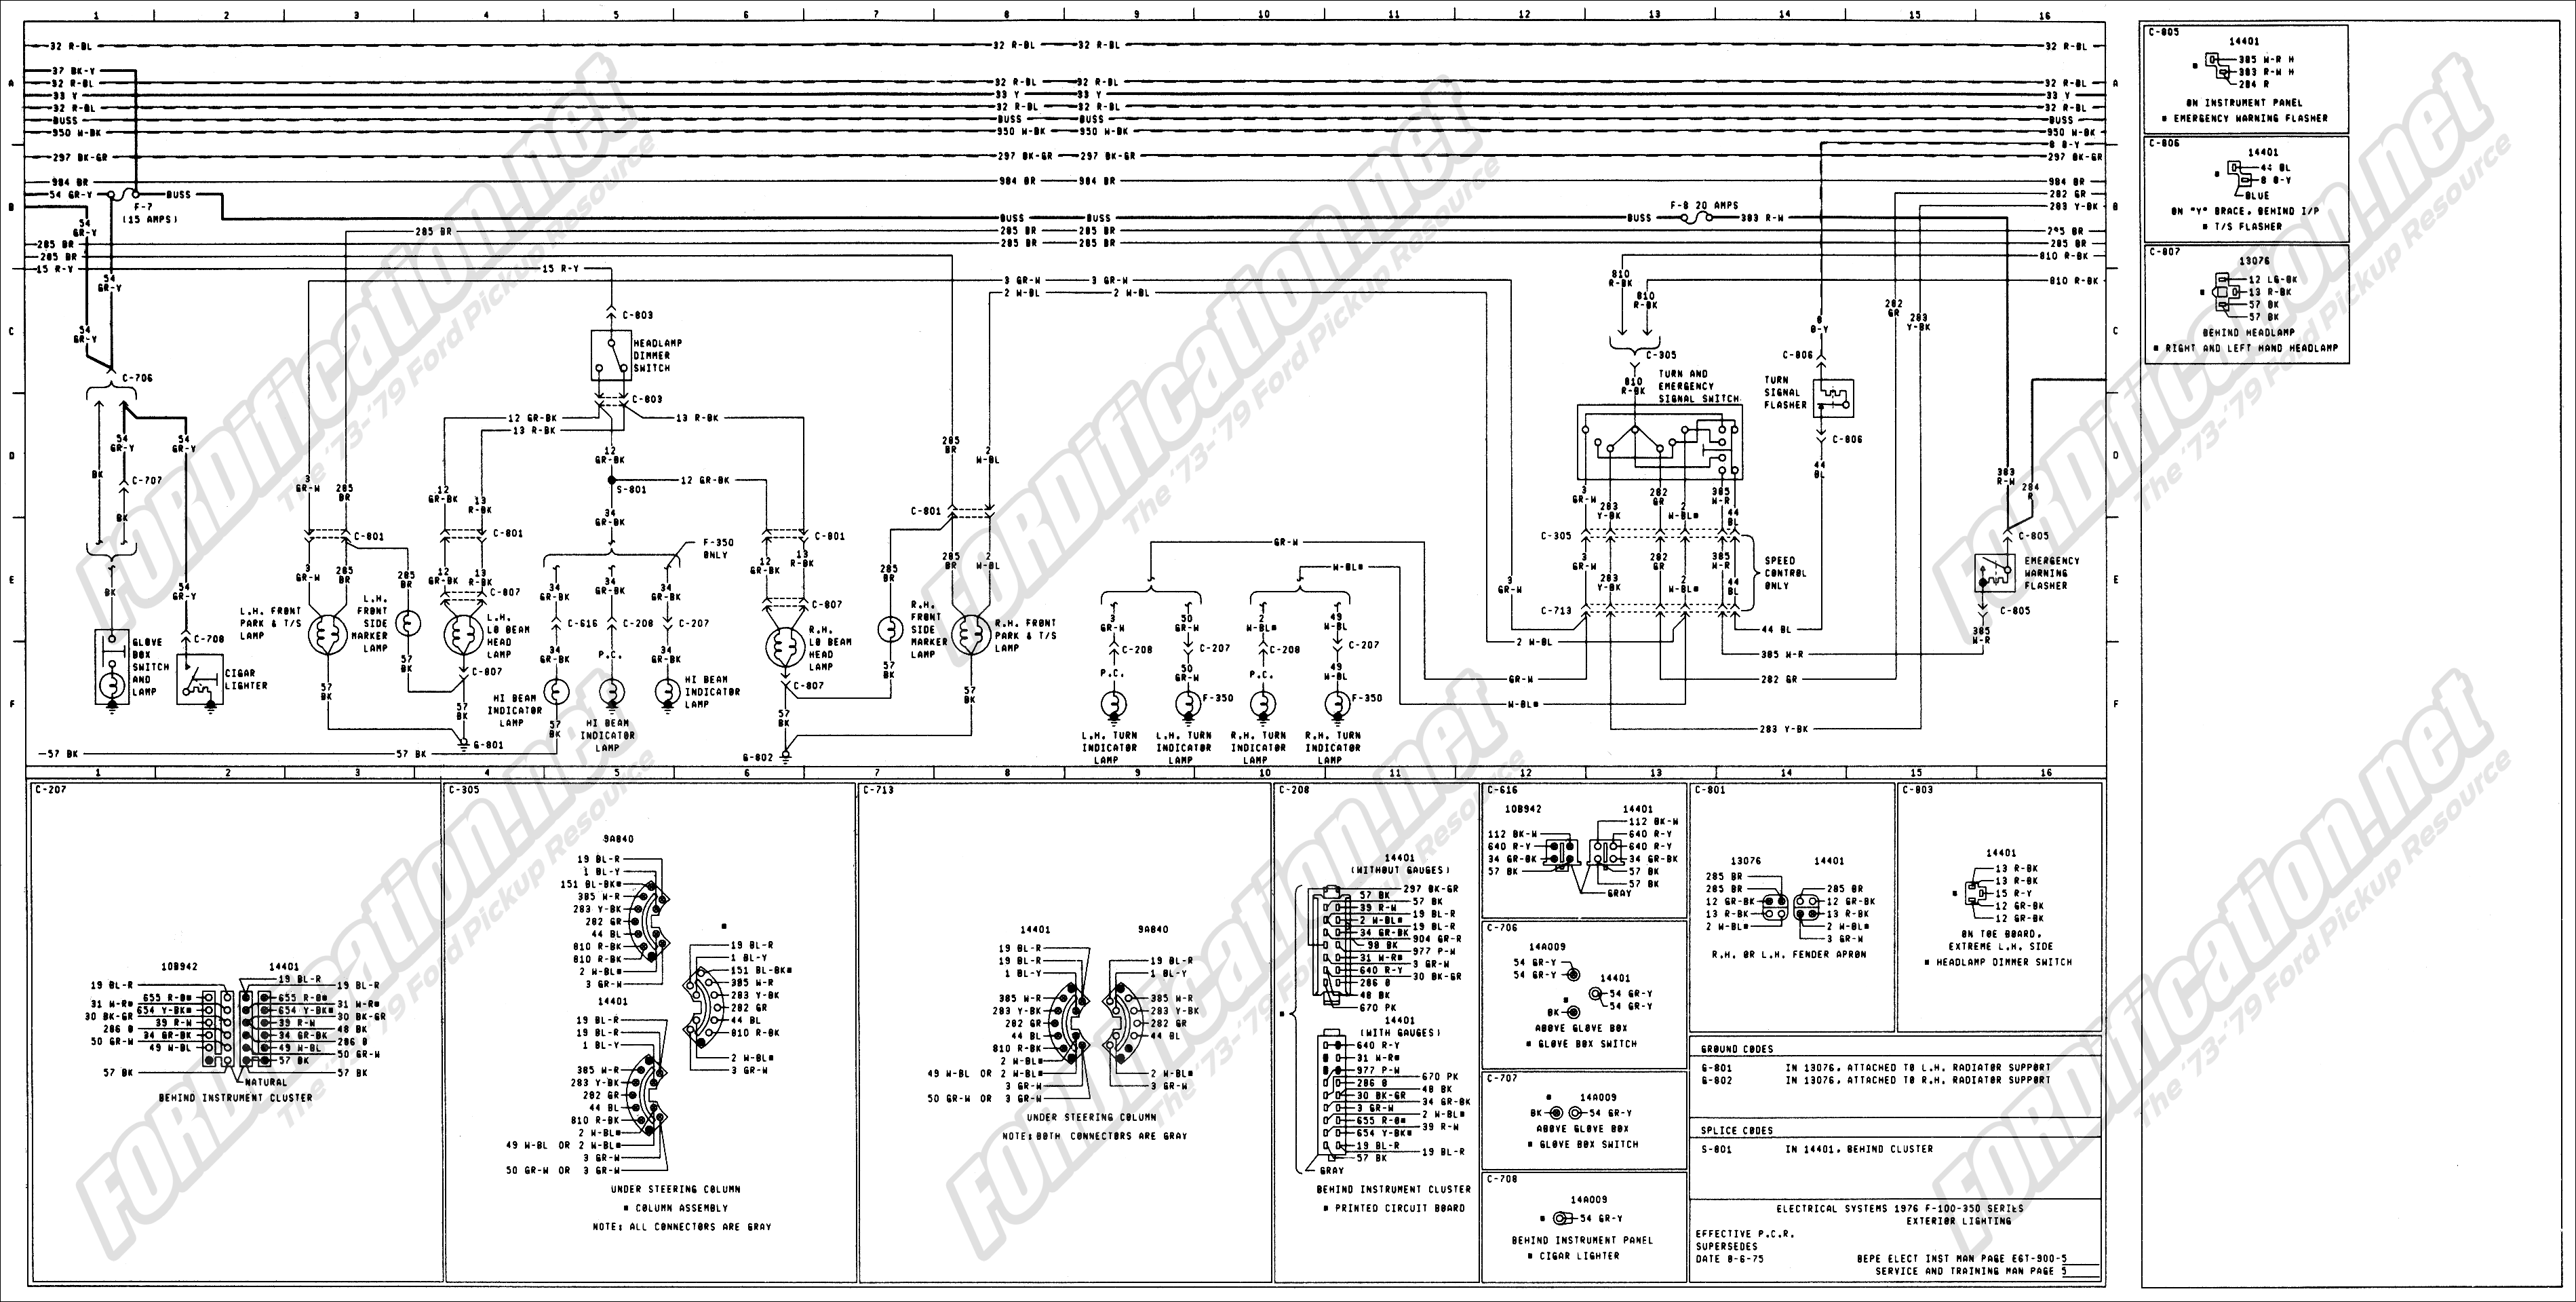 78 ford f100 wiring diagram detailed schematics diagram rh lelandlutheran  com 1987 Mustang Wiring Diagram 2002 Mustang Wiring Diagram